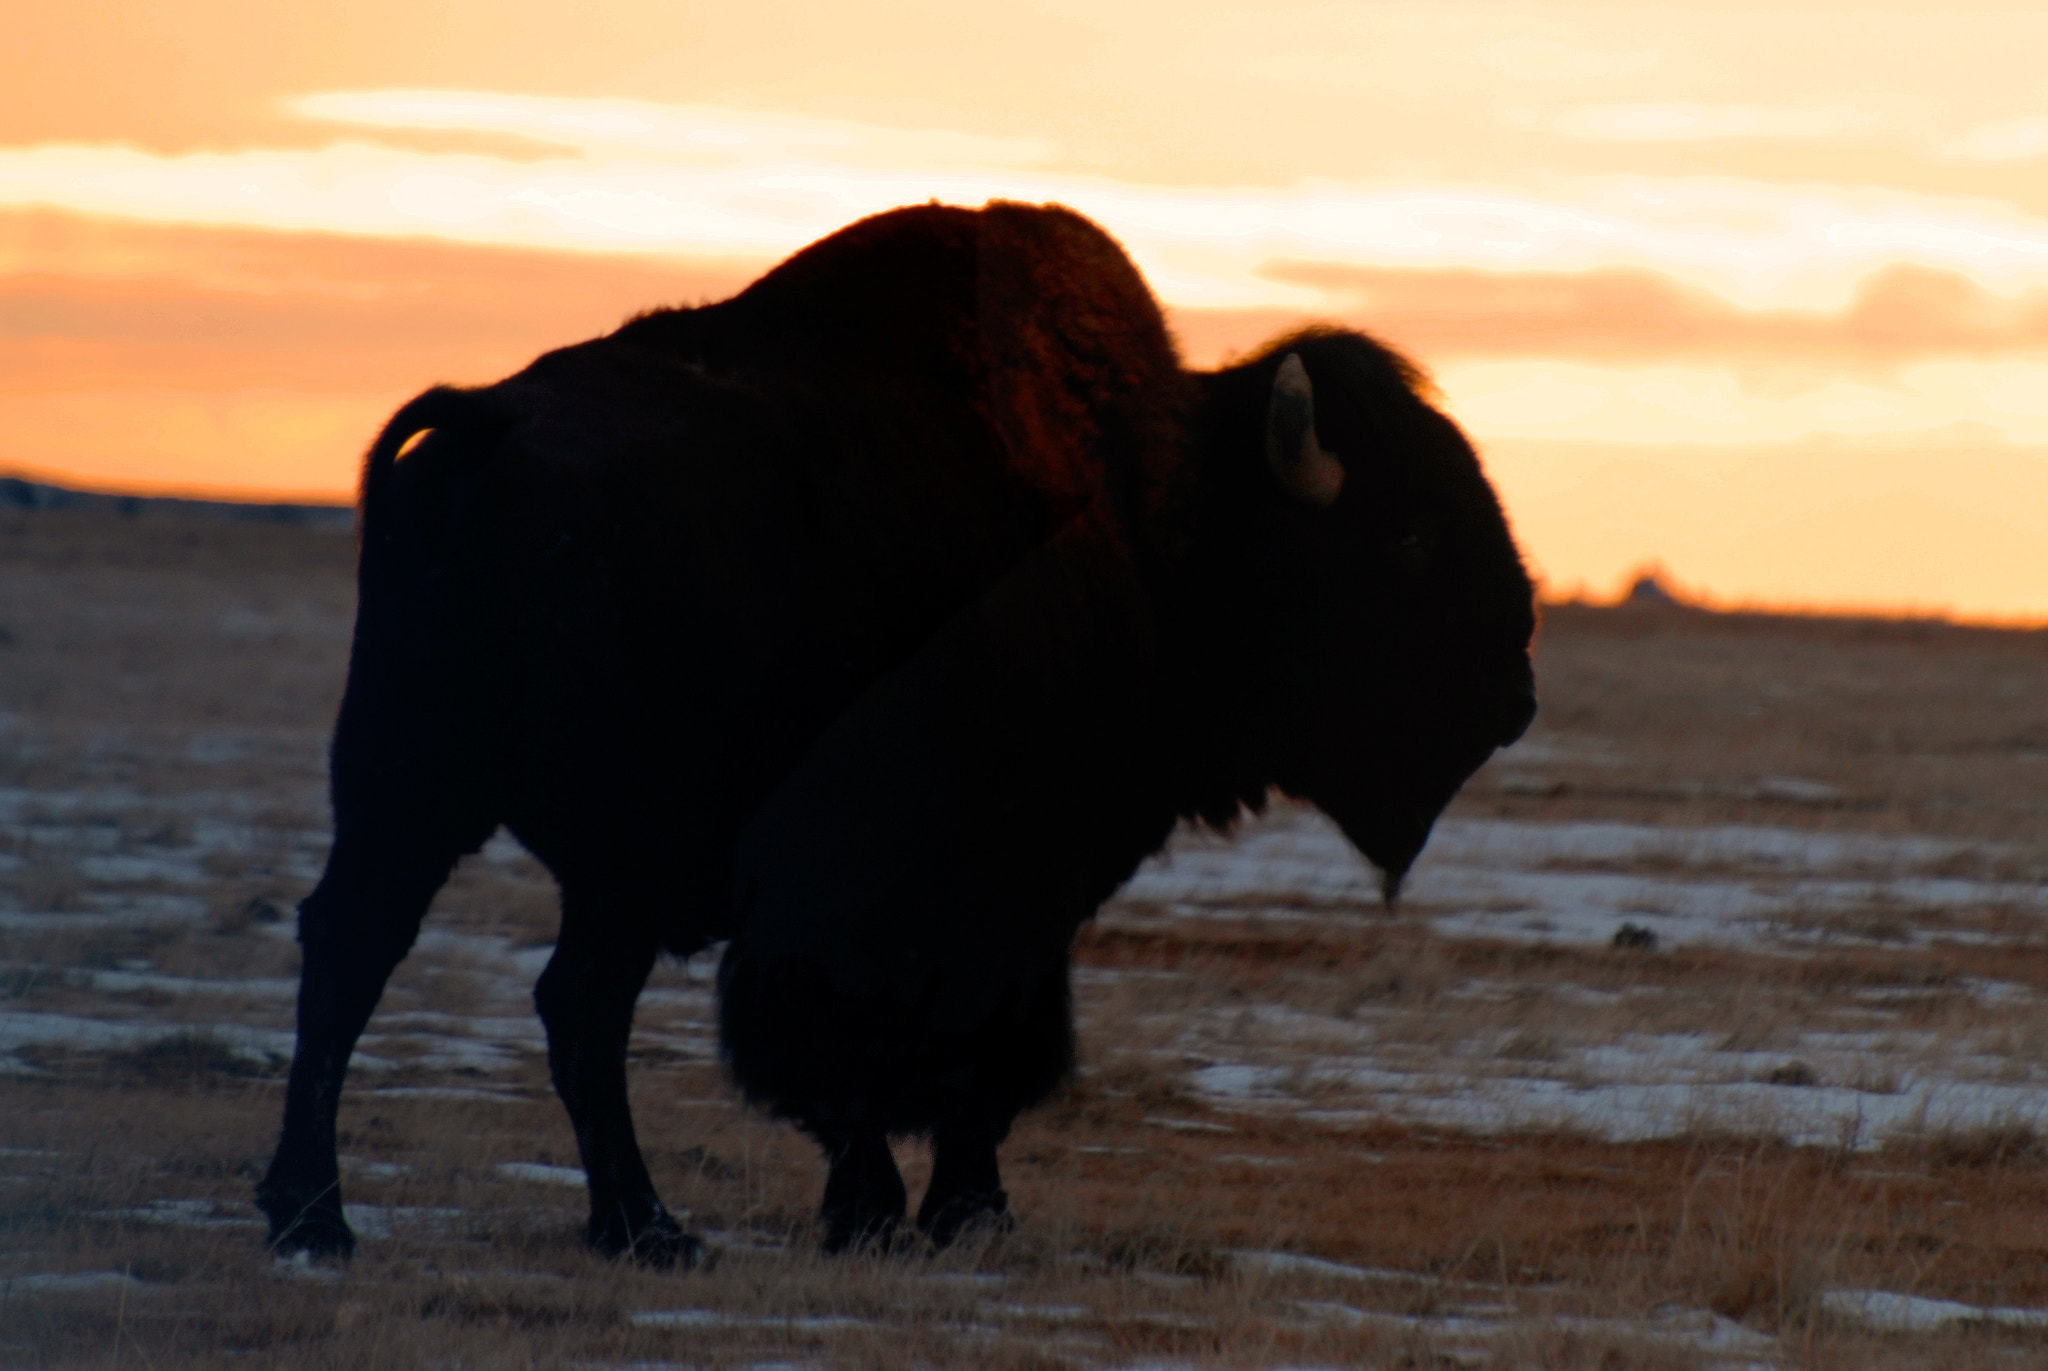 Photograph Bison Profile by Mark Jones on 500px